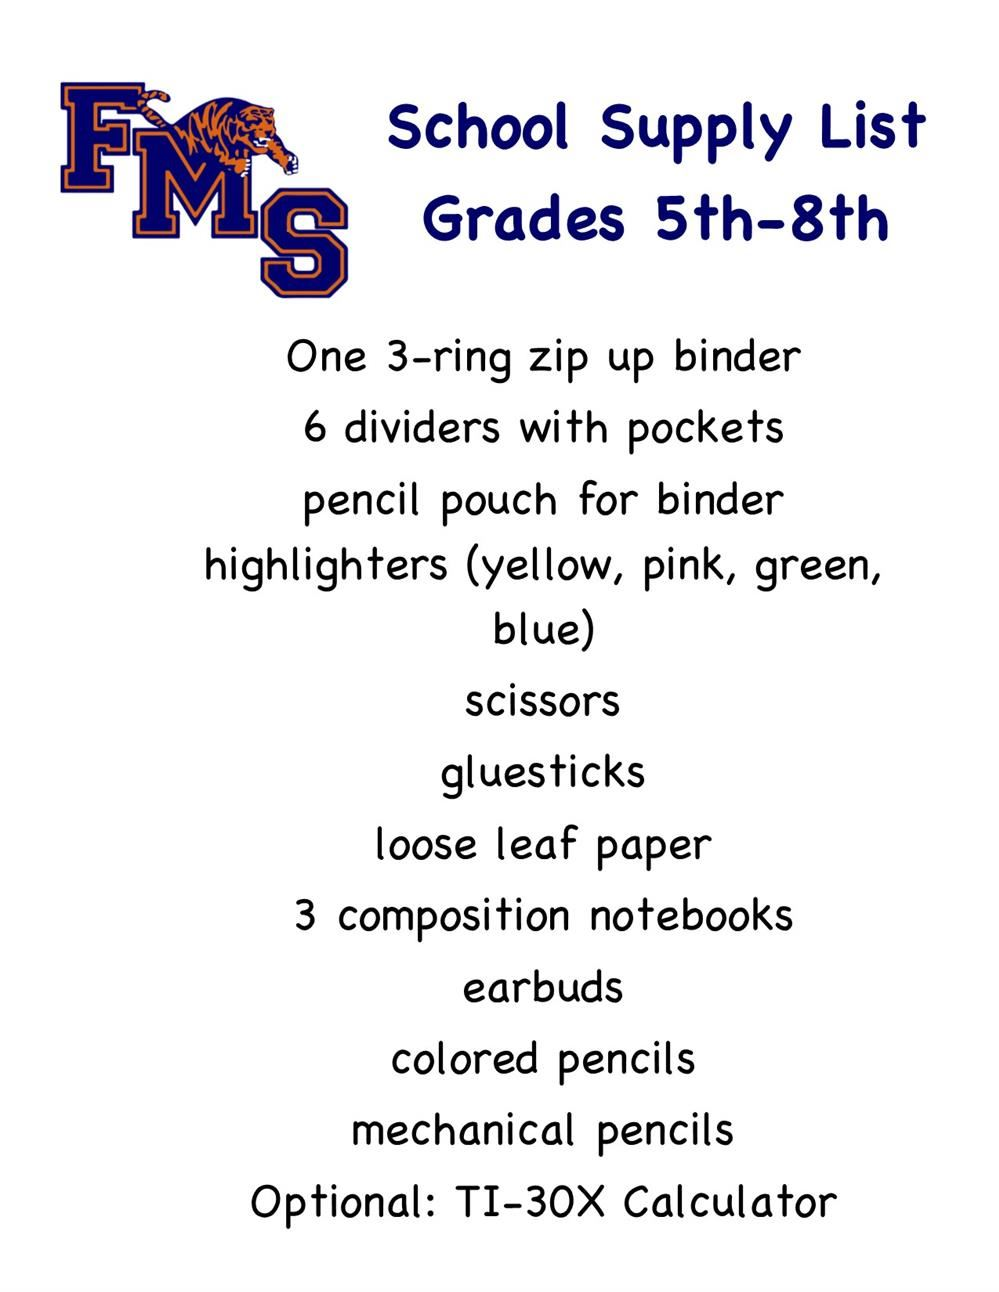 flyer with school supply list